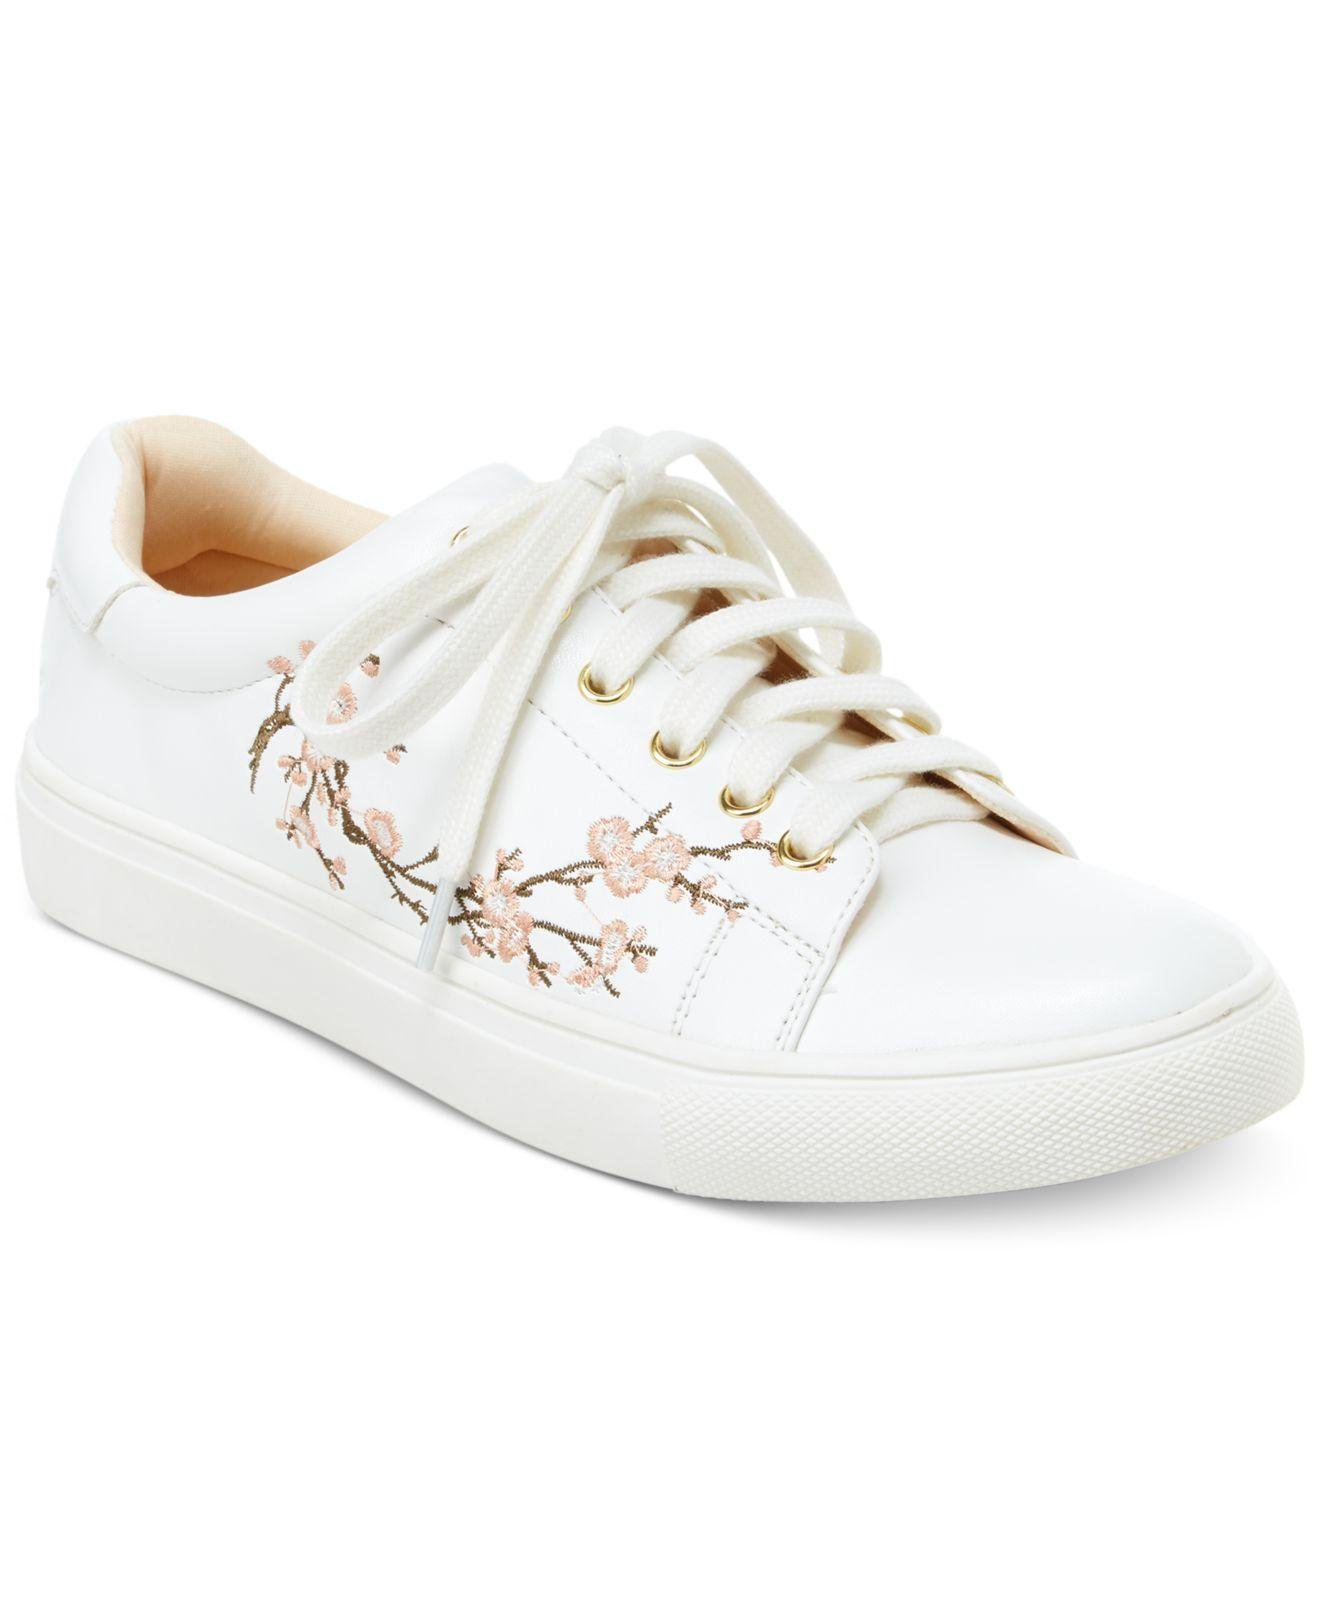 Nanette Lepore Womens Winona Leather Low Top Lace up, White/Print, Size 9.5